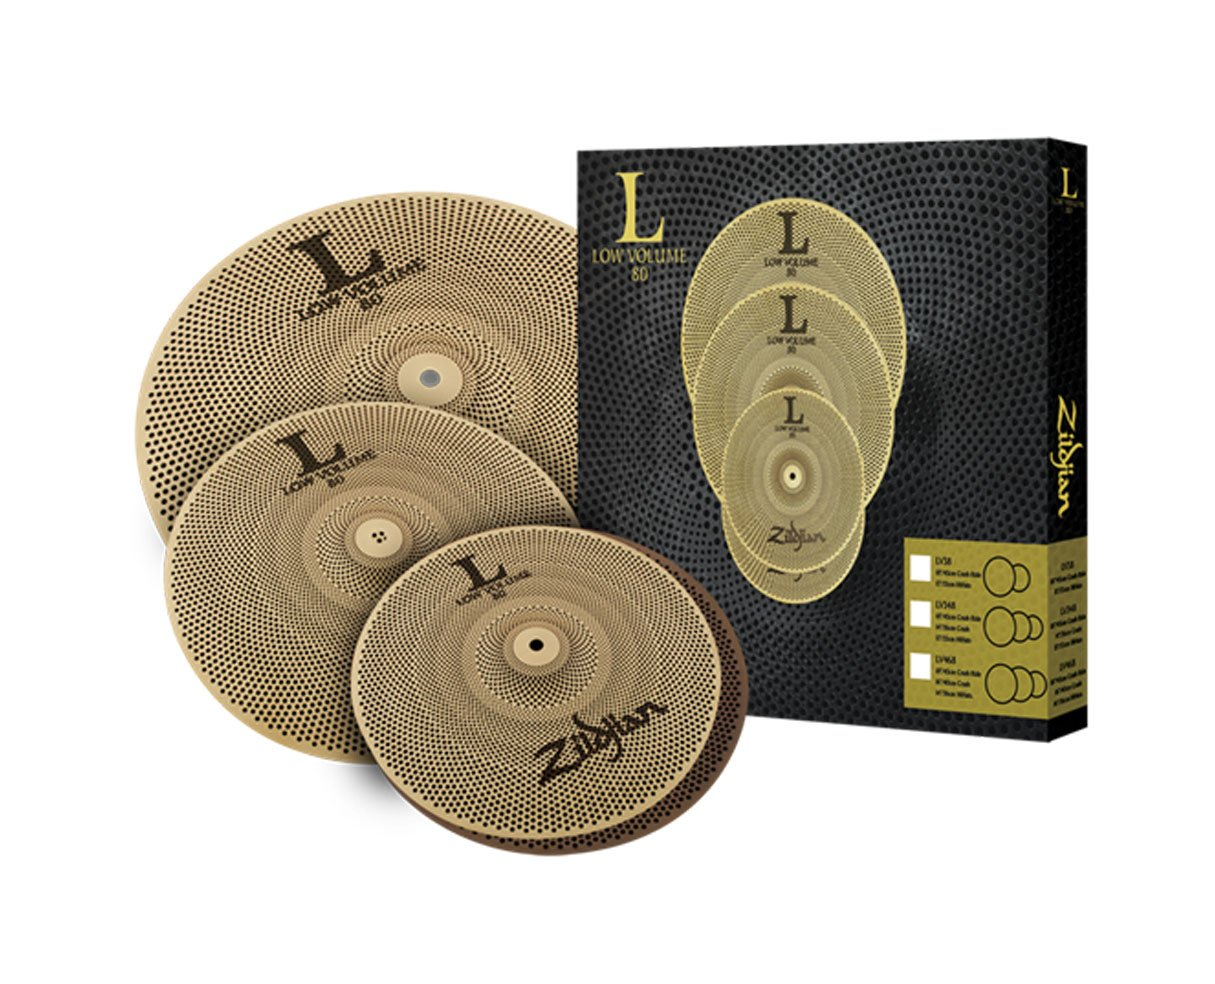 Zildjian L80 Low Volume 348 Cymbal Box Set by Avedis Zildjian Company